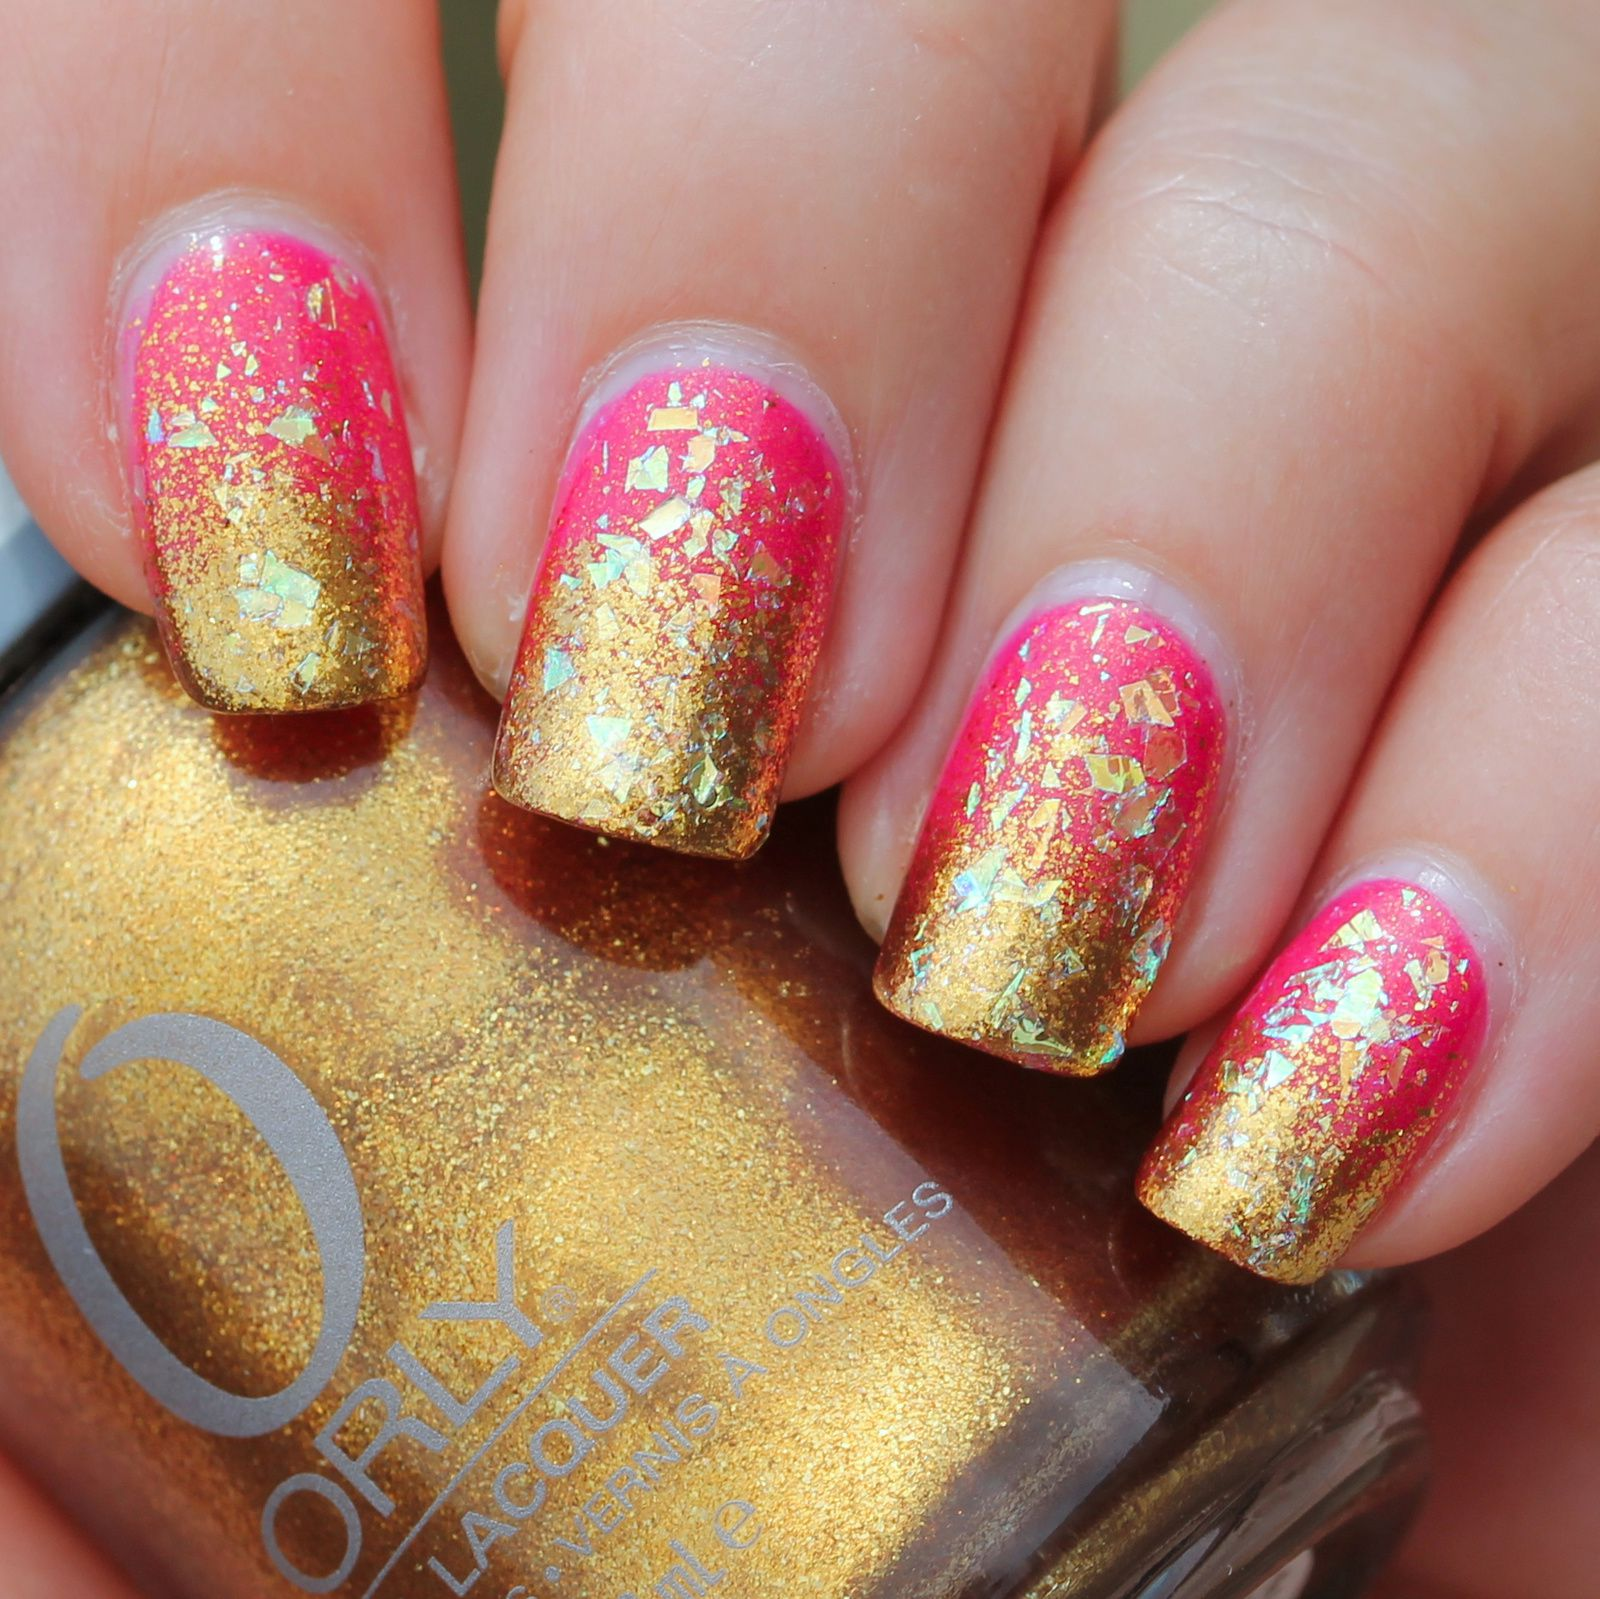 Duri Rejuvacote / China Glaze Strawberry Fields / Orly Glitz & Glamour sponge gradient / Revlon Cosmic Flakies / Sally Hansen Miracle Gel Top Coat